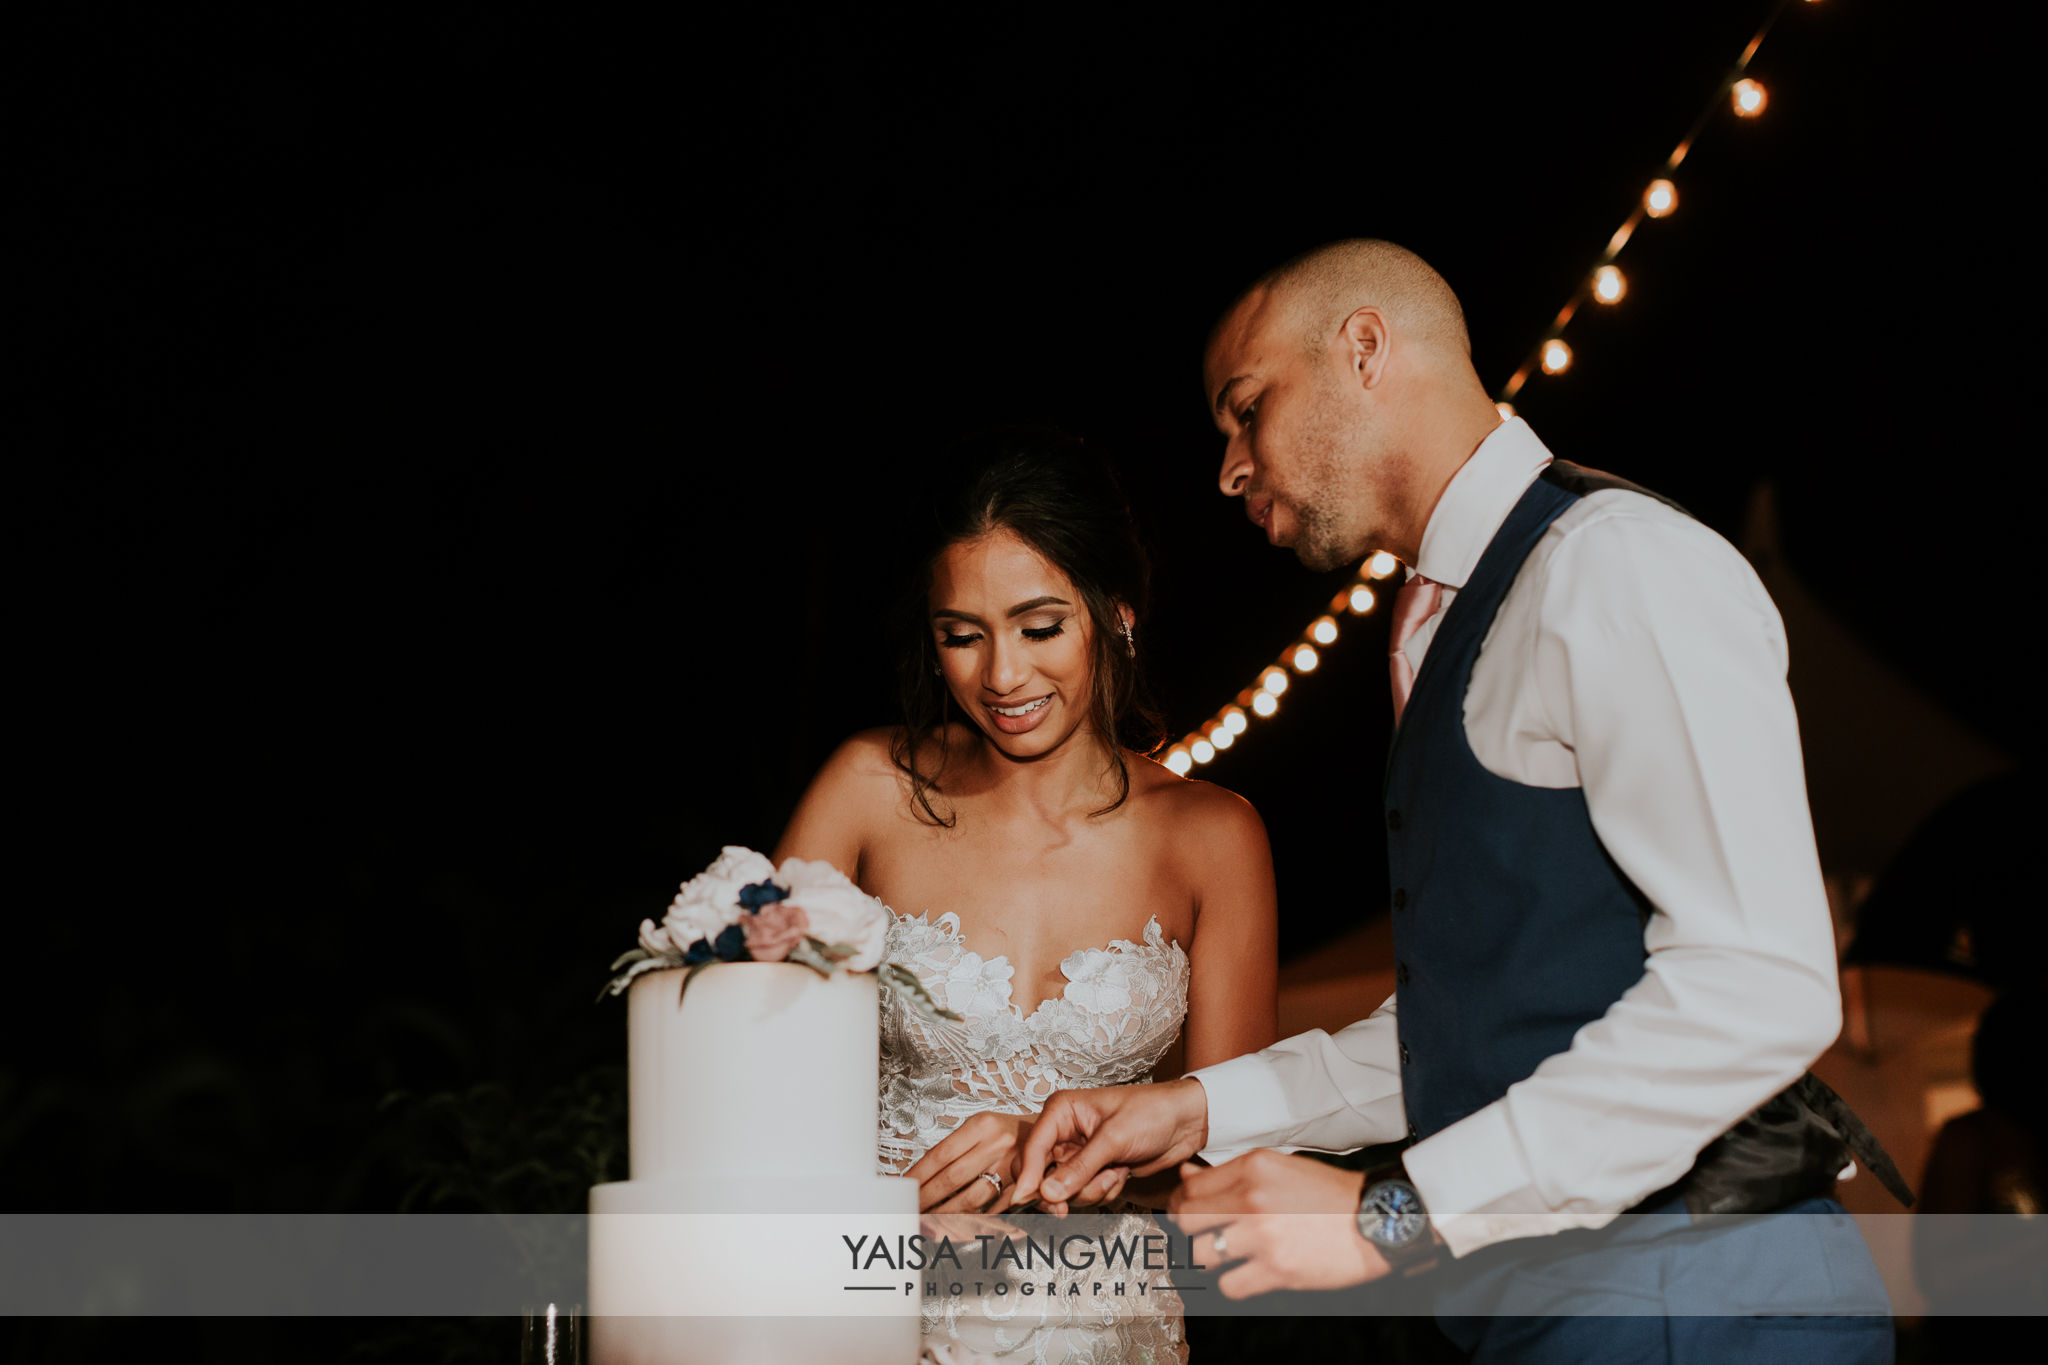 Shawn + Vaughn wedding in Trinidad and Tobago